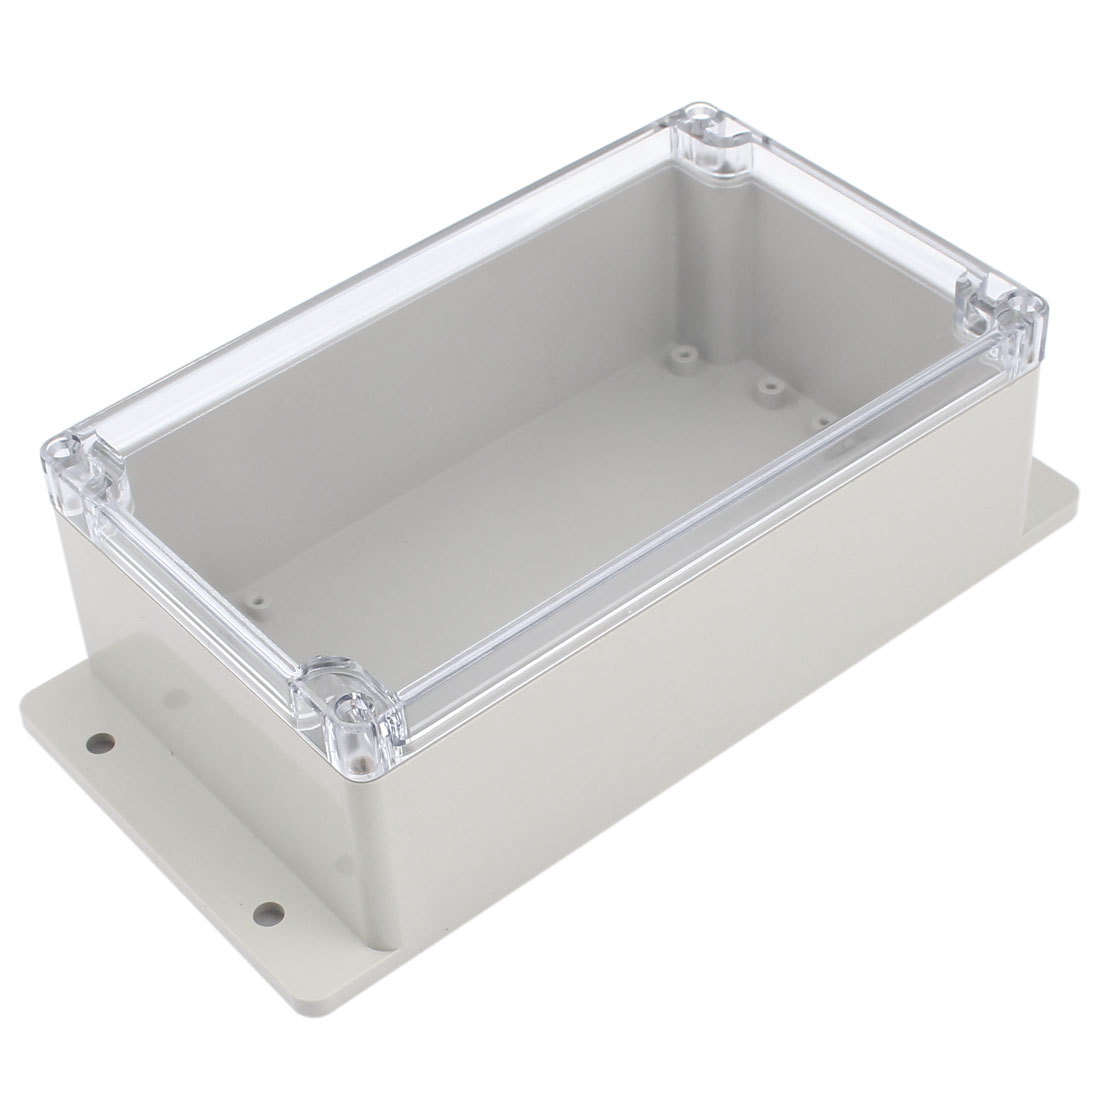 200mm x 120mm x 75mm Waterproof Plastic DIY Junction Box Power Protection Case